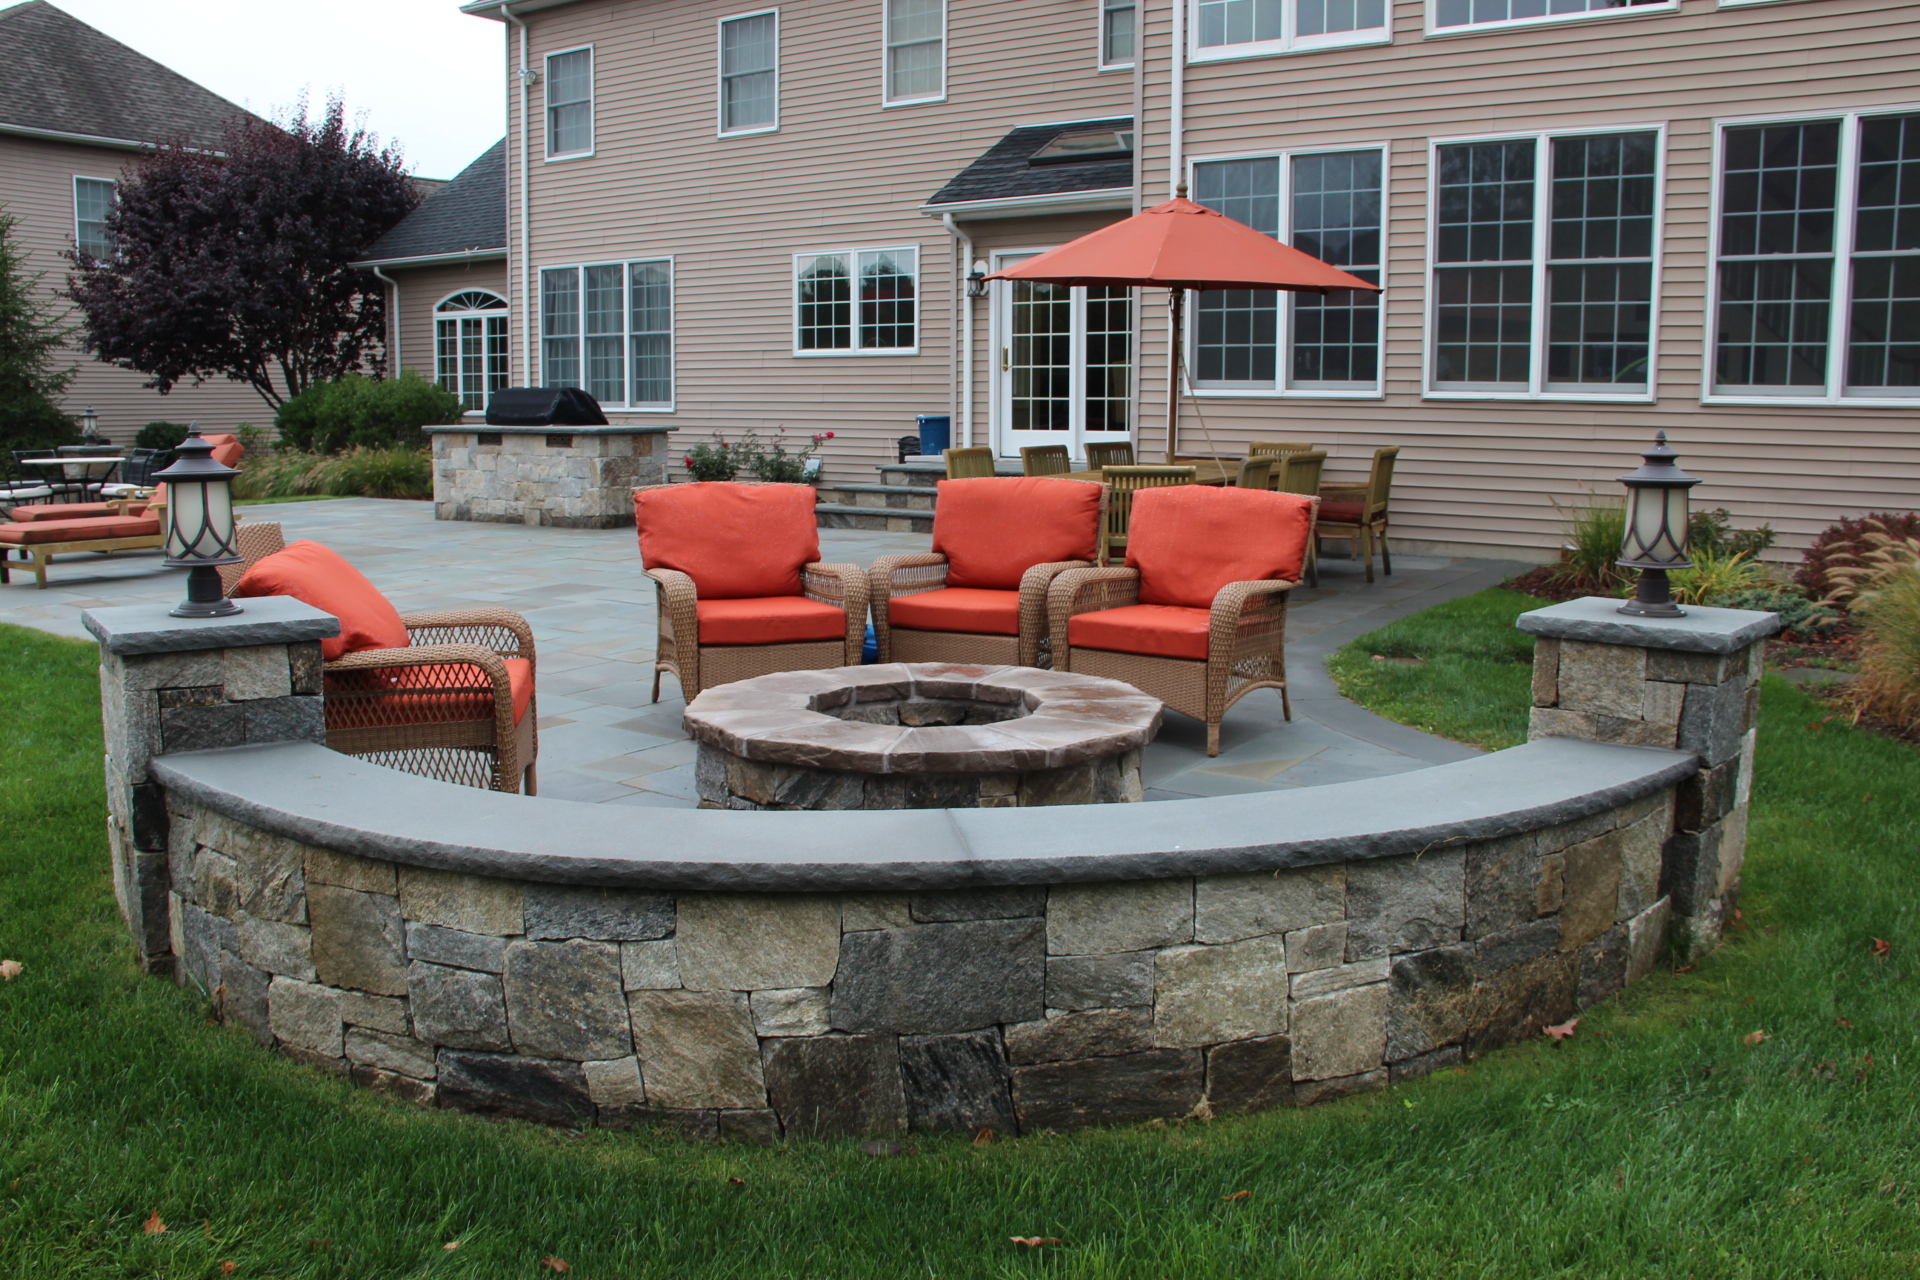 Why You Should Add a Fire Pit to Your Outdoor Patio in Your Somers, NY, Home